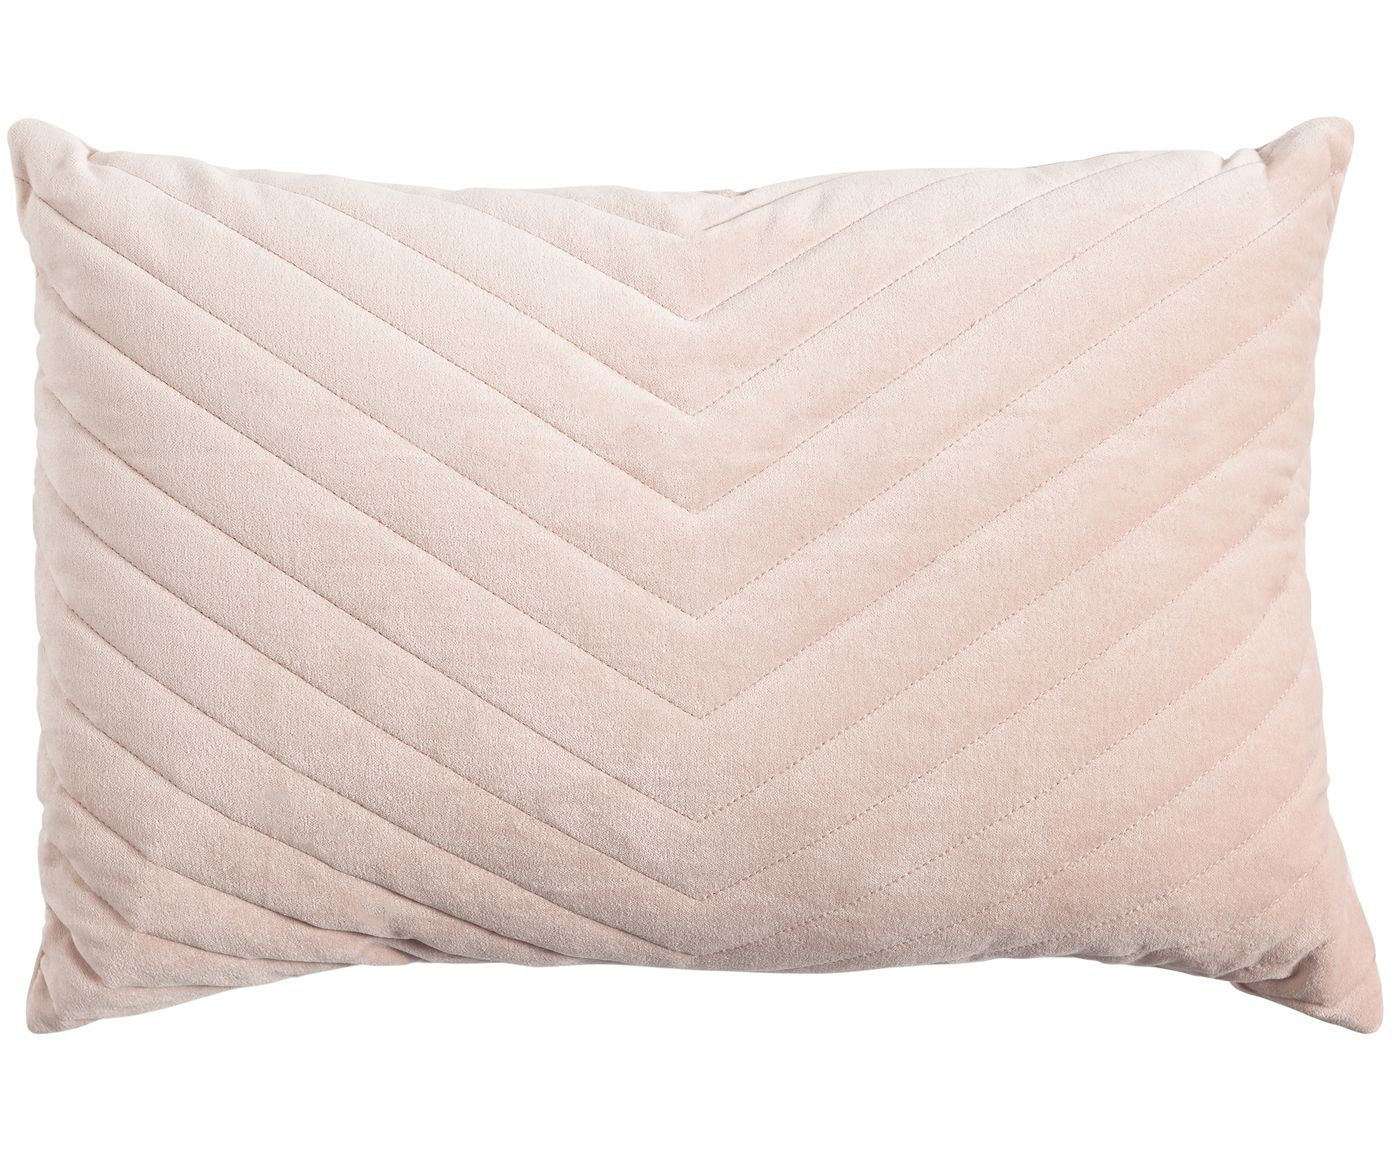 Kissenhülle Rosa Kissen Victory In 2019 Wohnzimmer Pillows Throw Pillows Bed